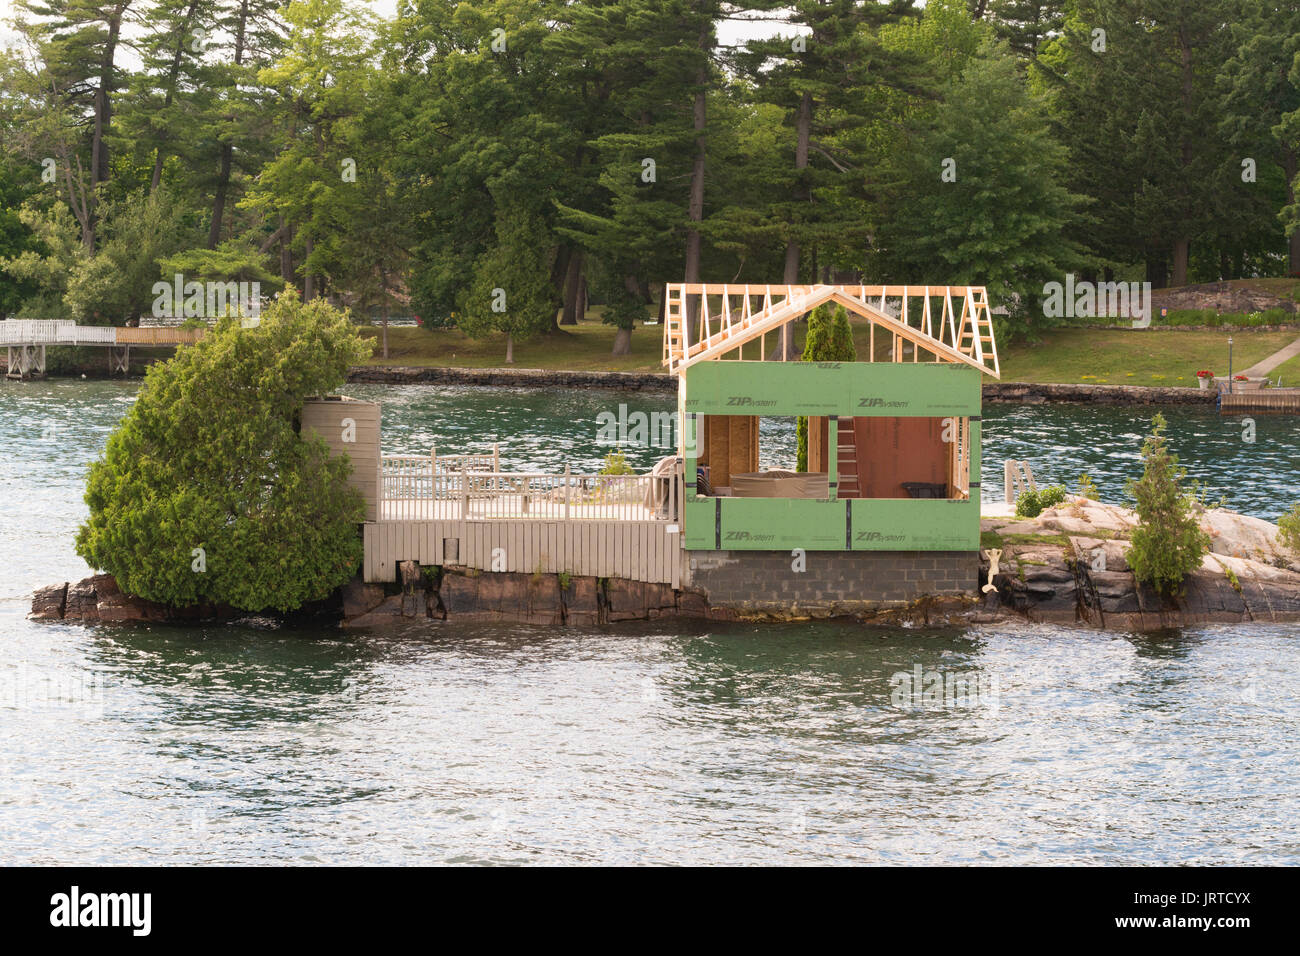 Thousand Islands new building under construction on tiny island,  Canada - Stock Image